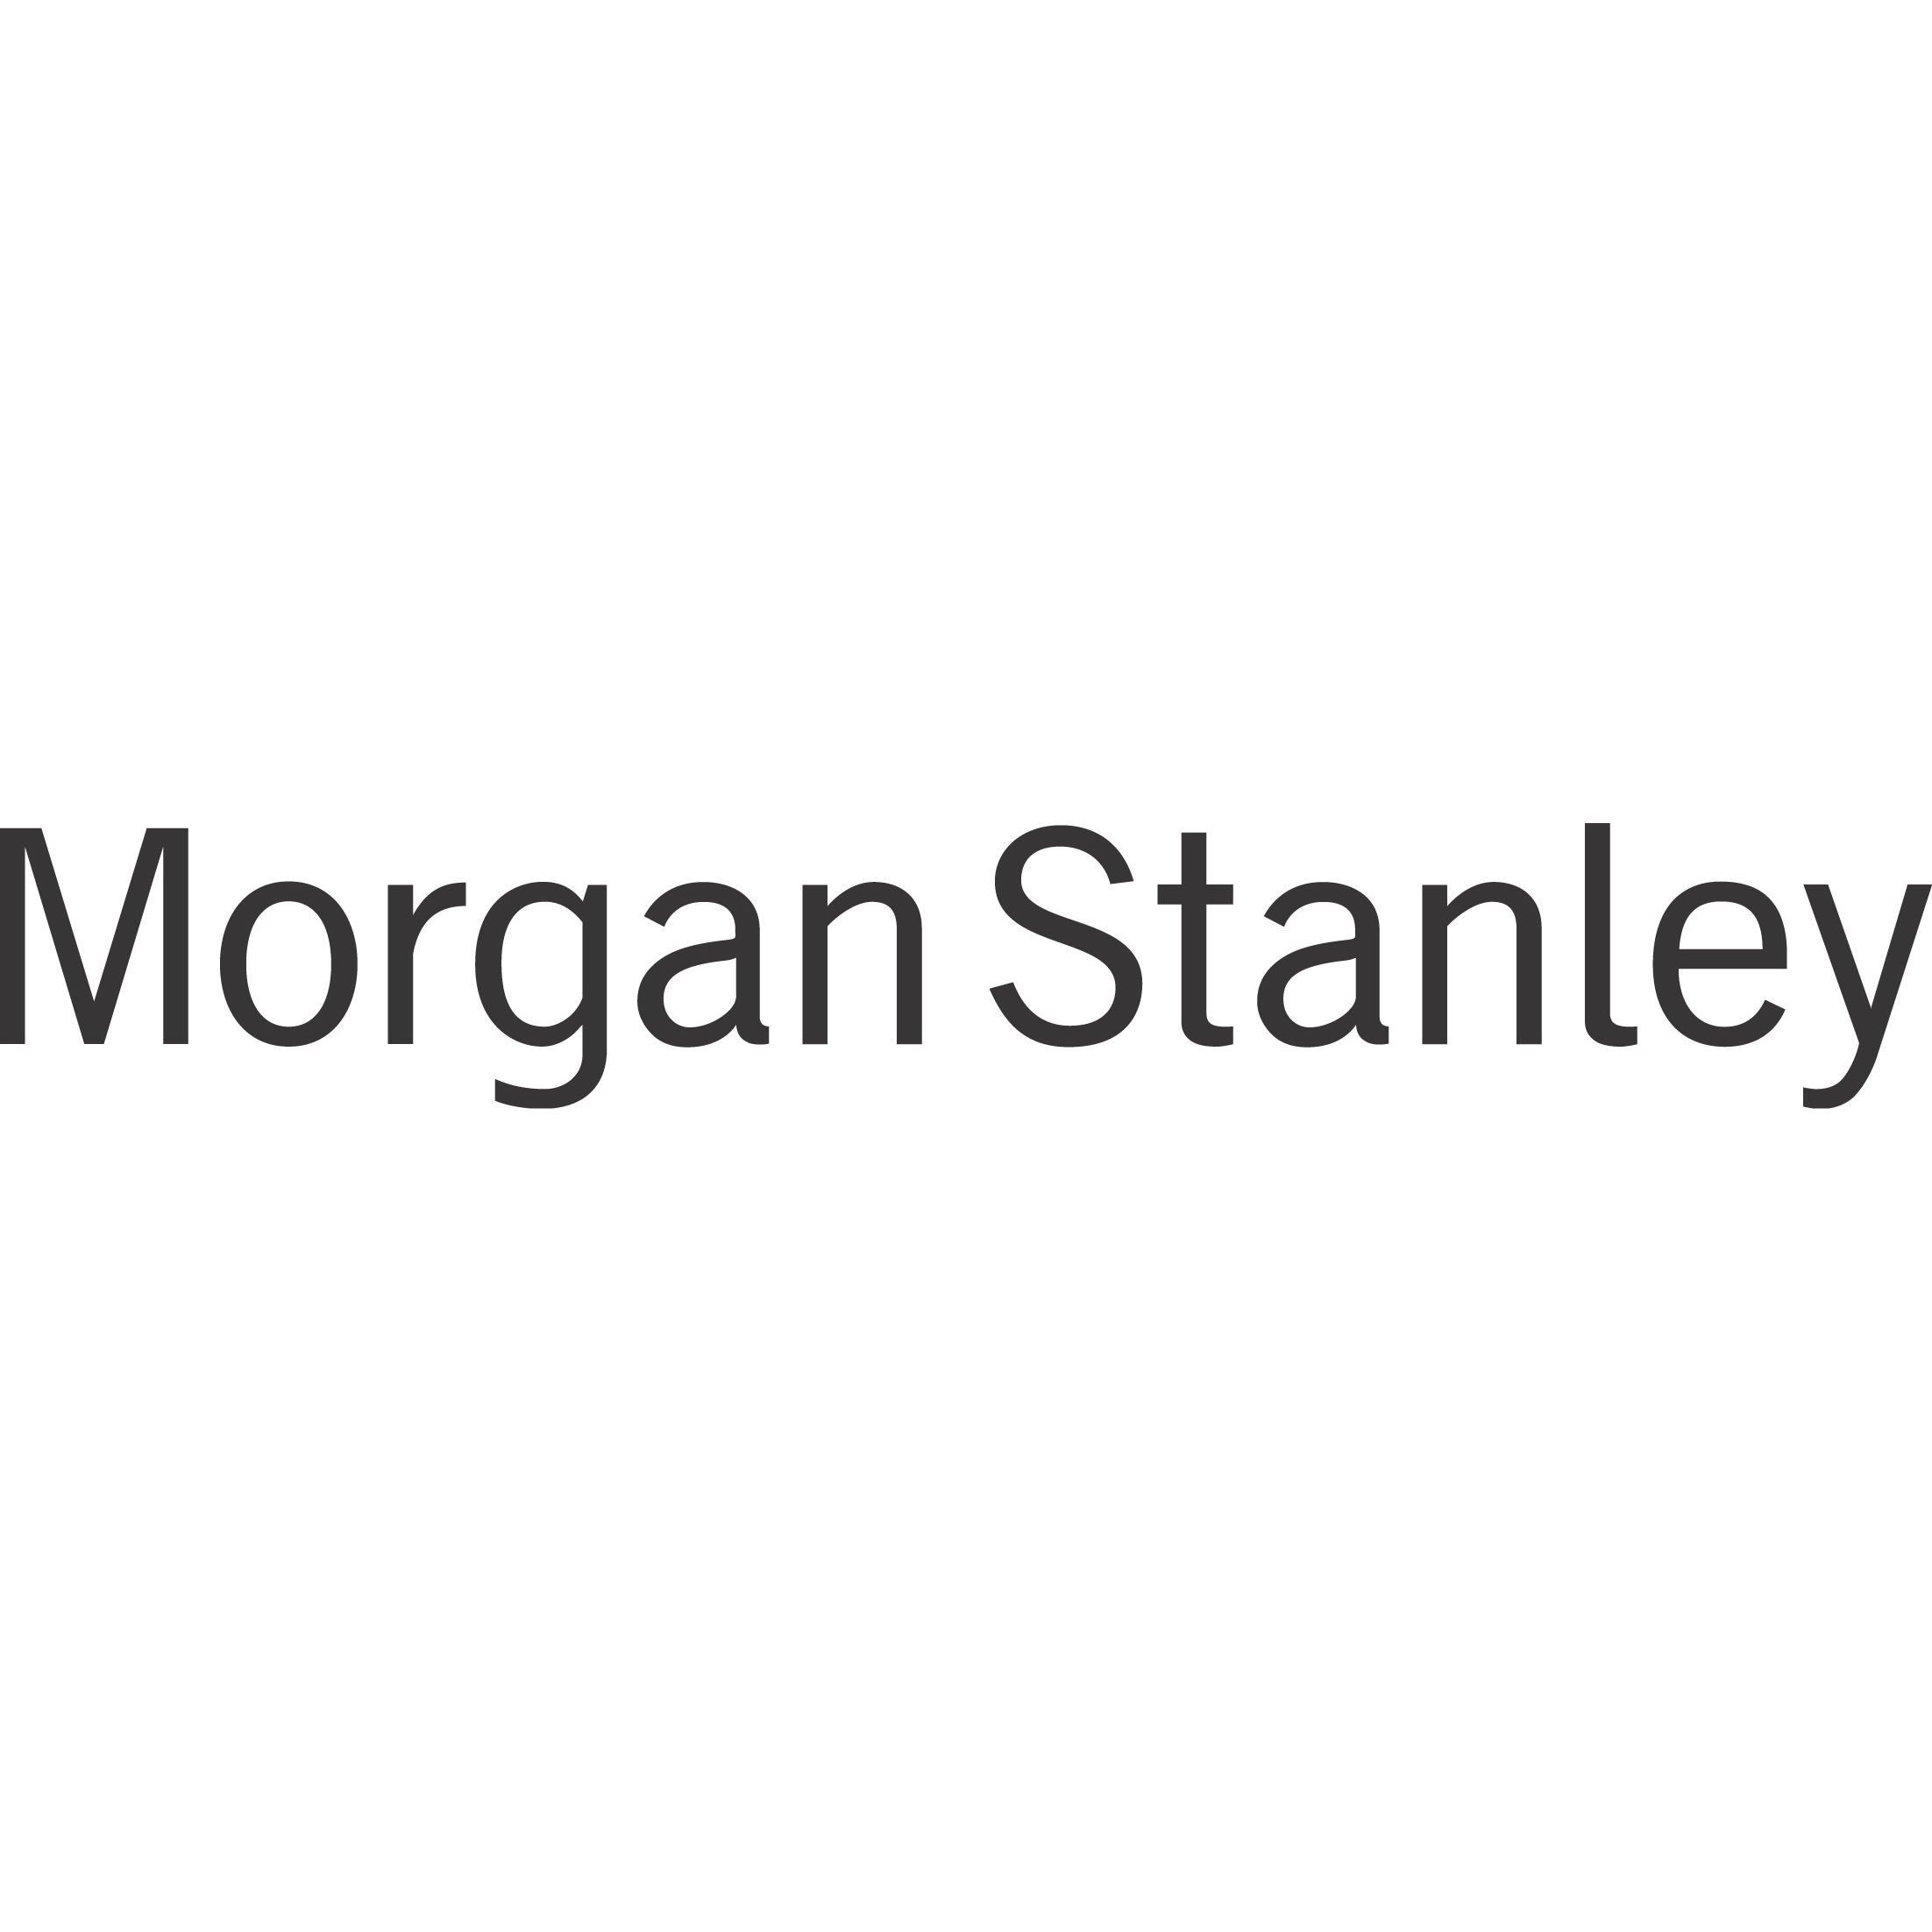 Michael J Wheeler - Morgan Stanley